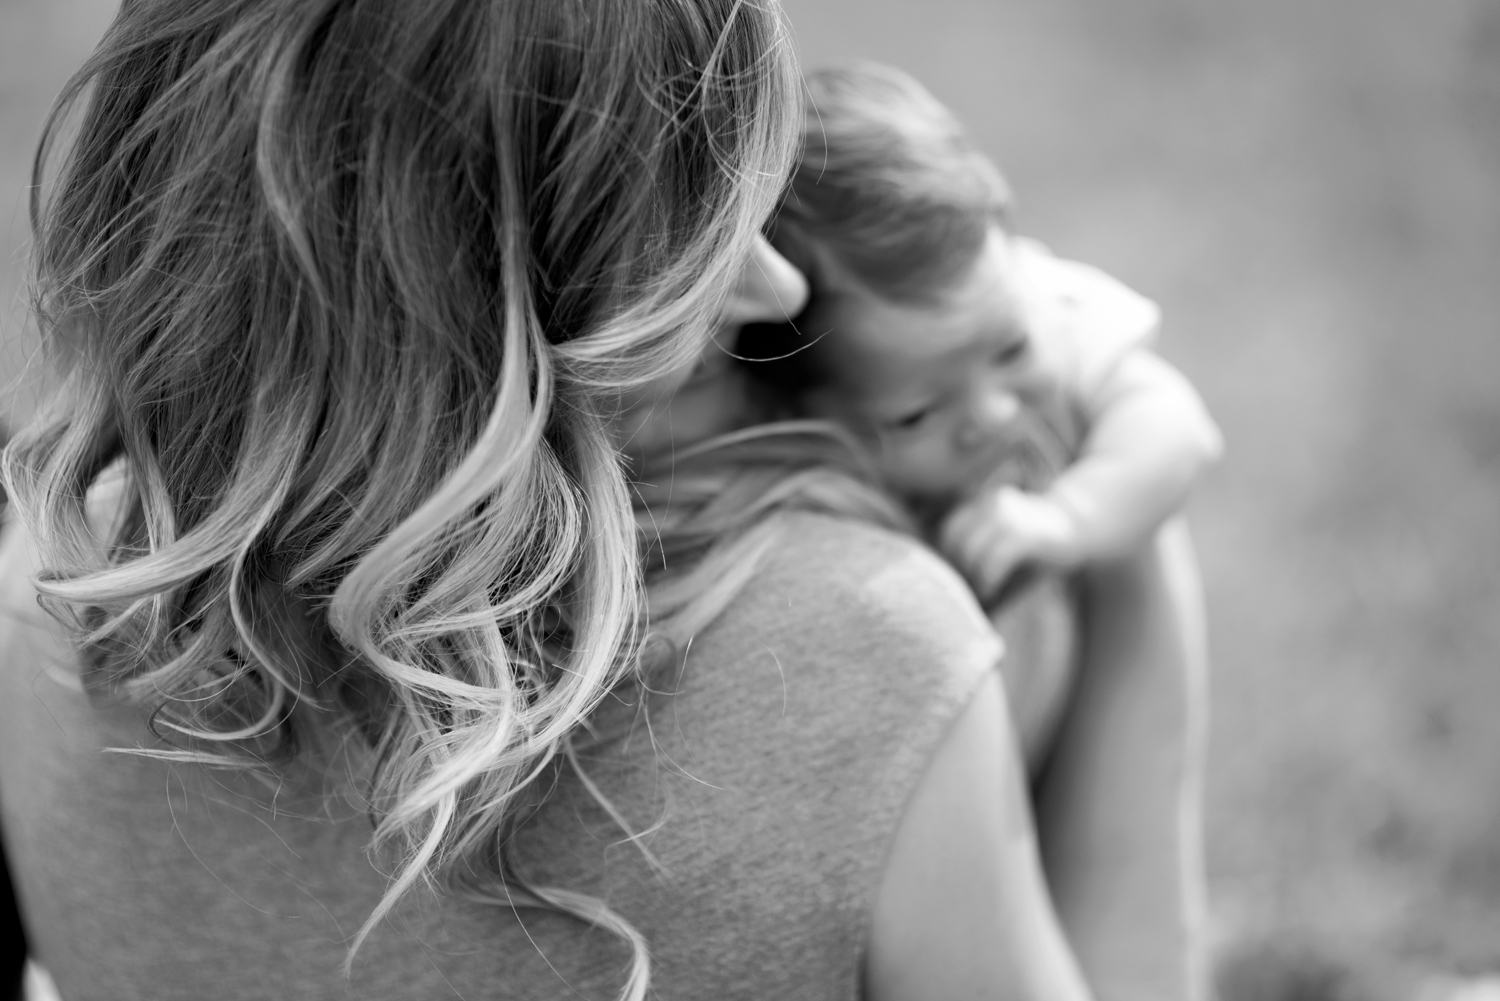 Black and white picture of the beauty of motherhood with her newborn baby boy